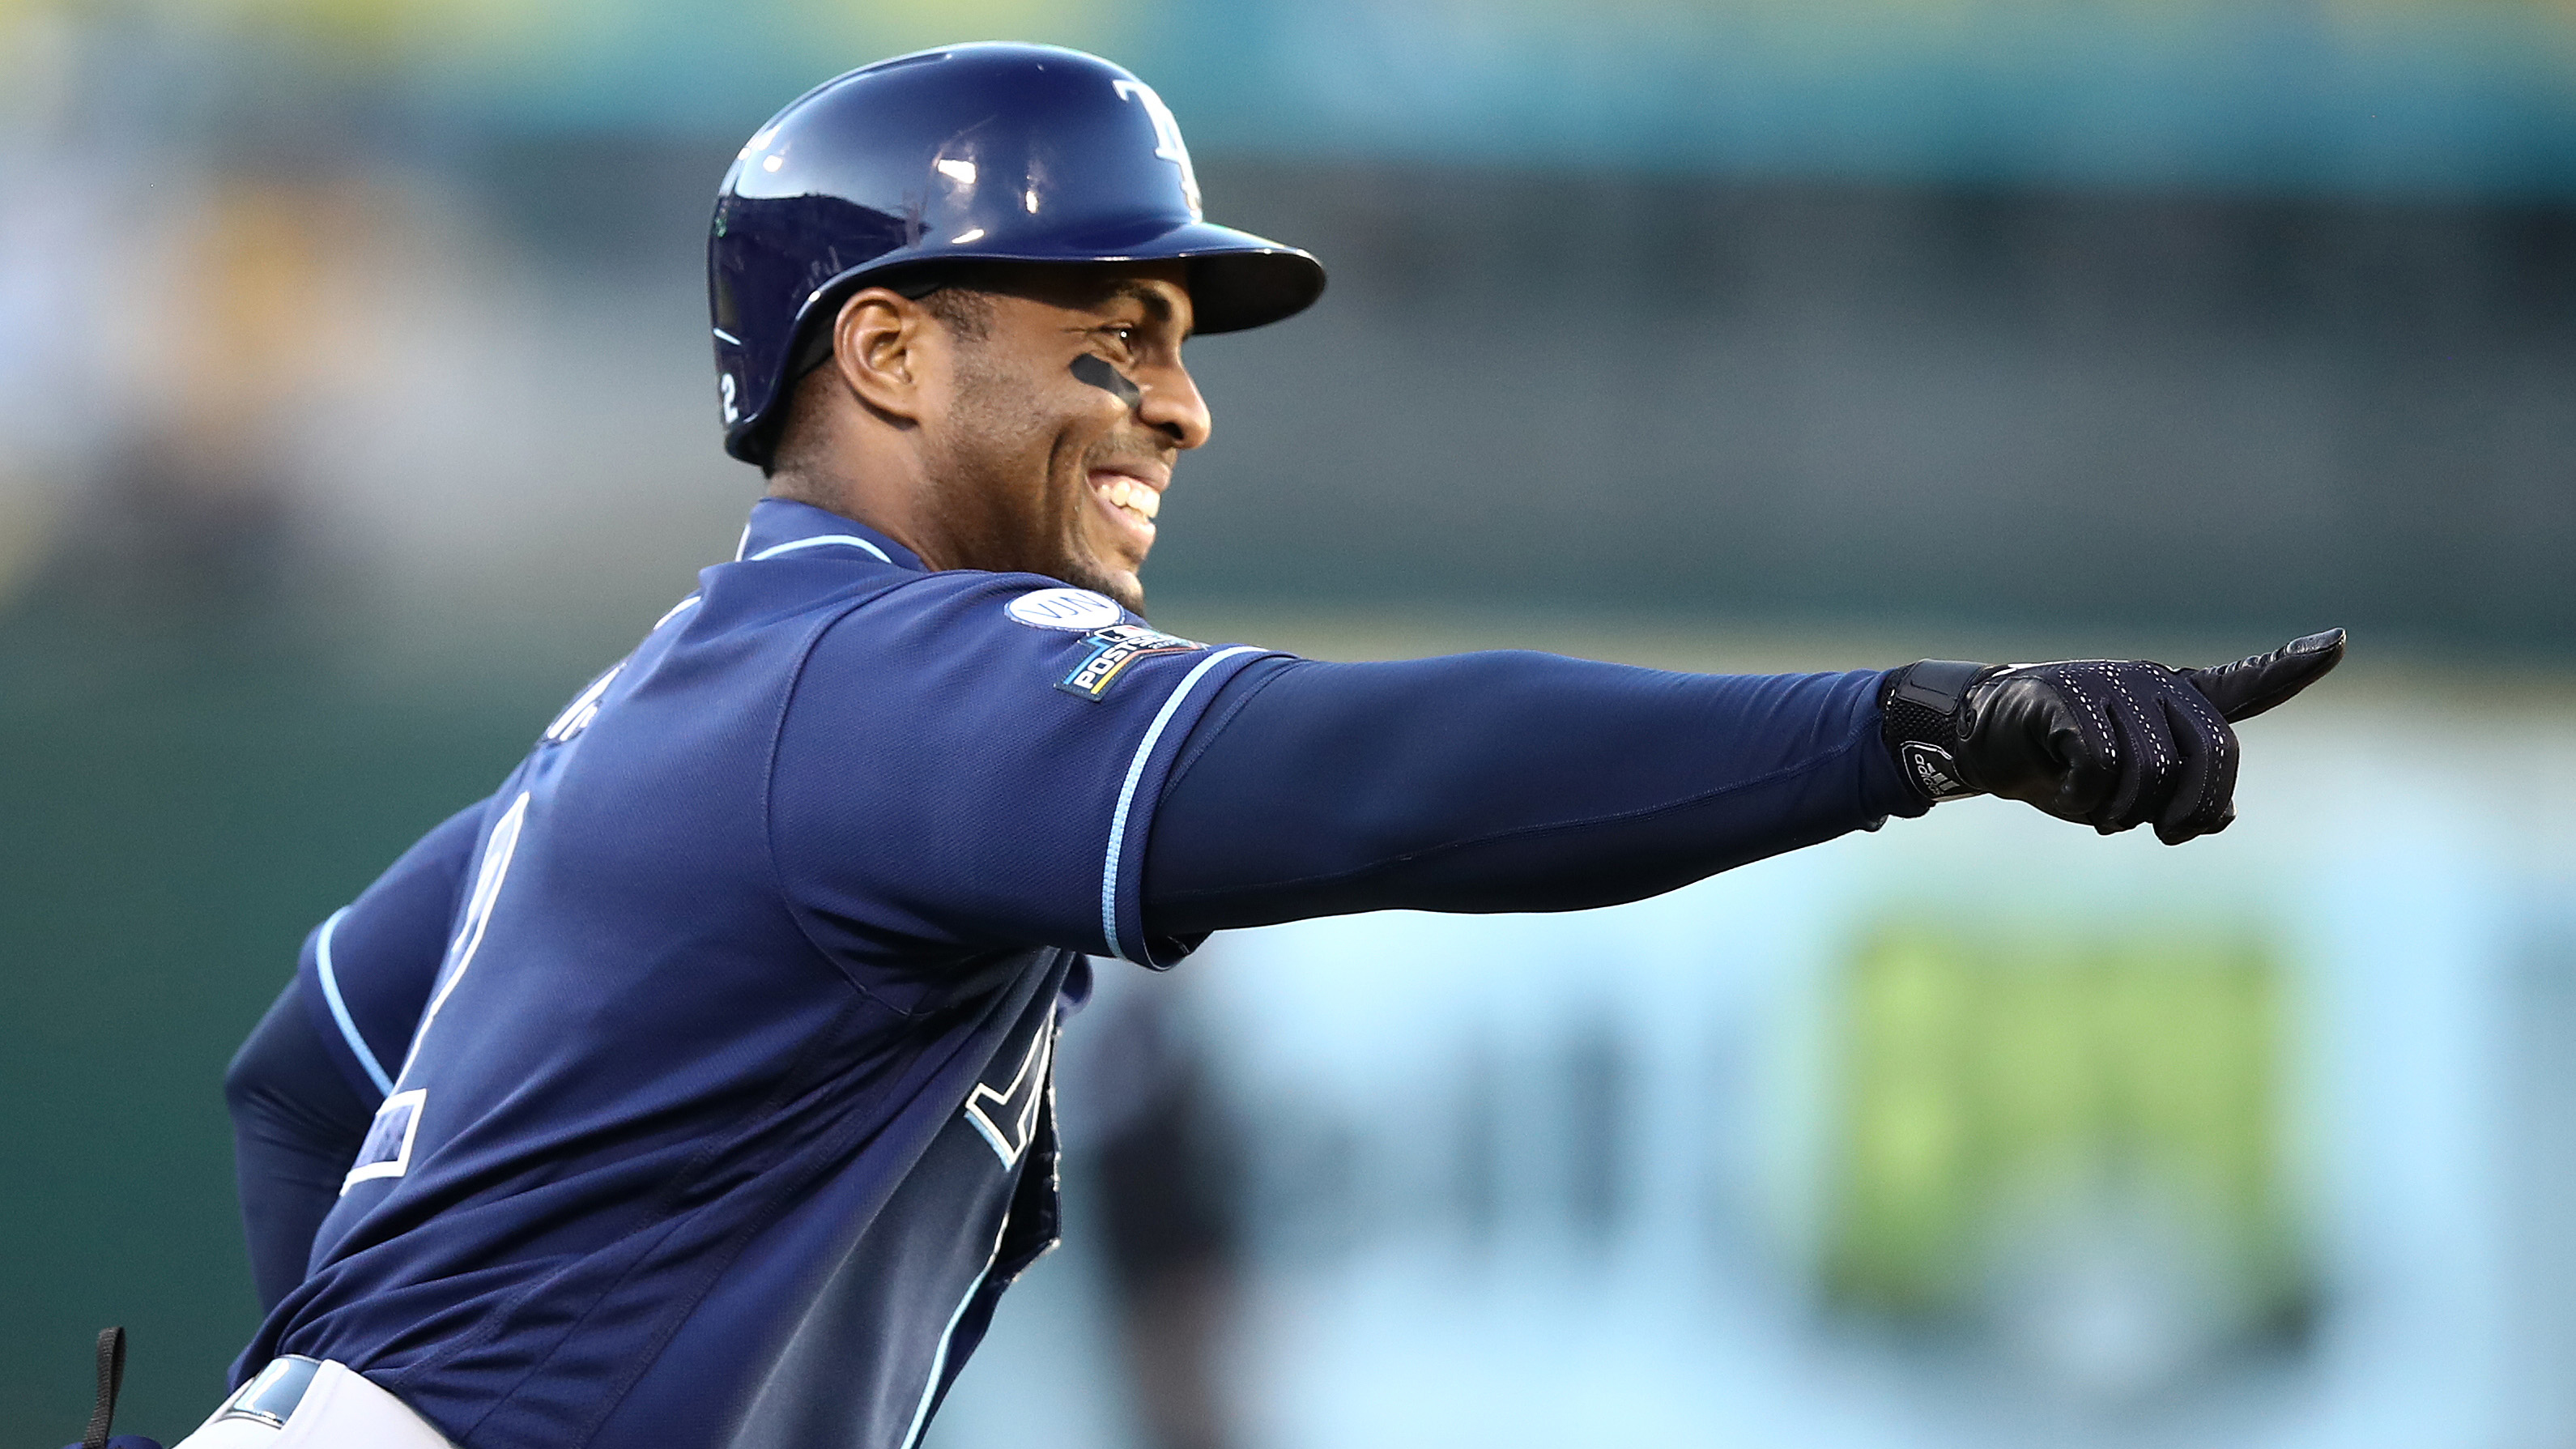 Rays-A's: Yandy Diaz homer leads to hilarious fan reaction (video)